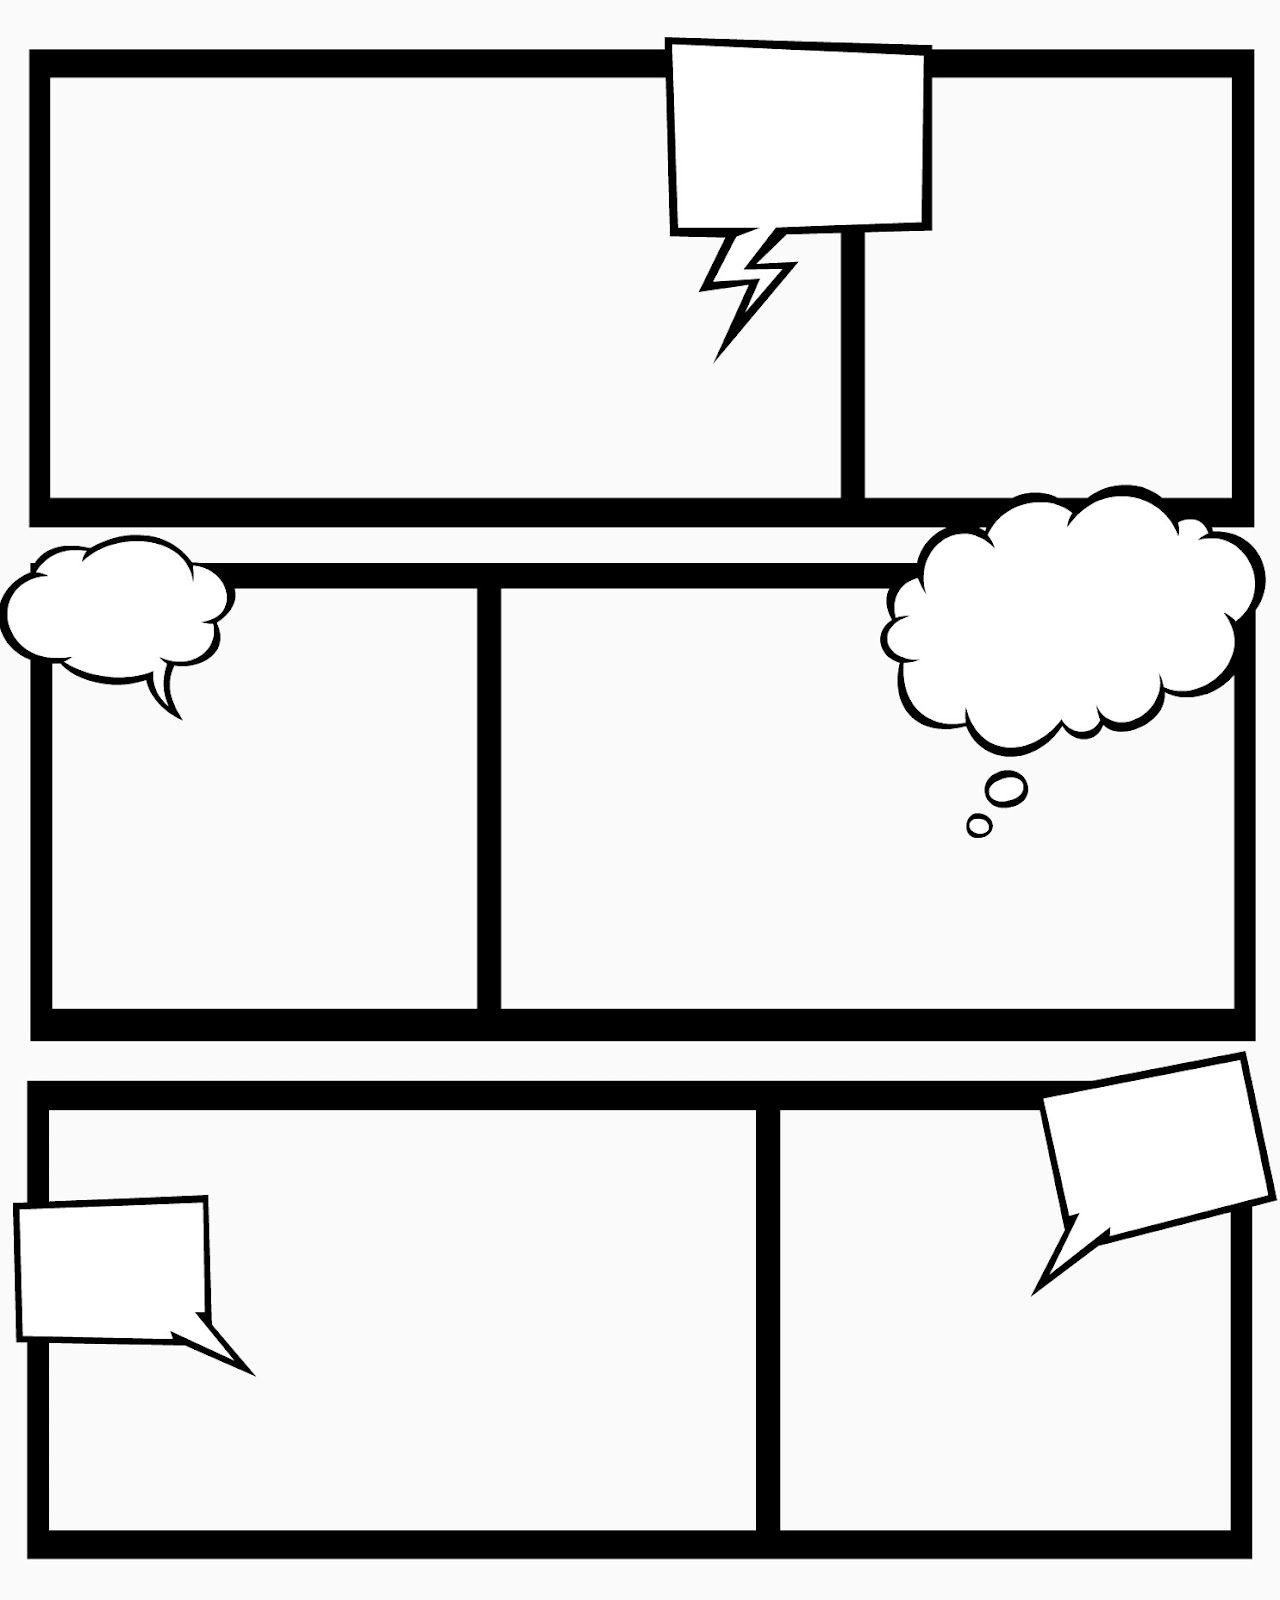 book writing templates microsoft word - sweet hot mess free printable comic book templates and